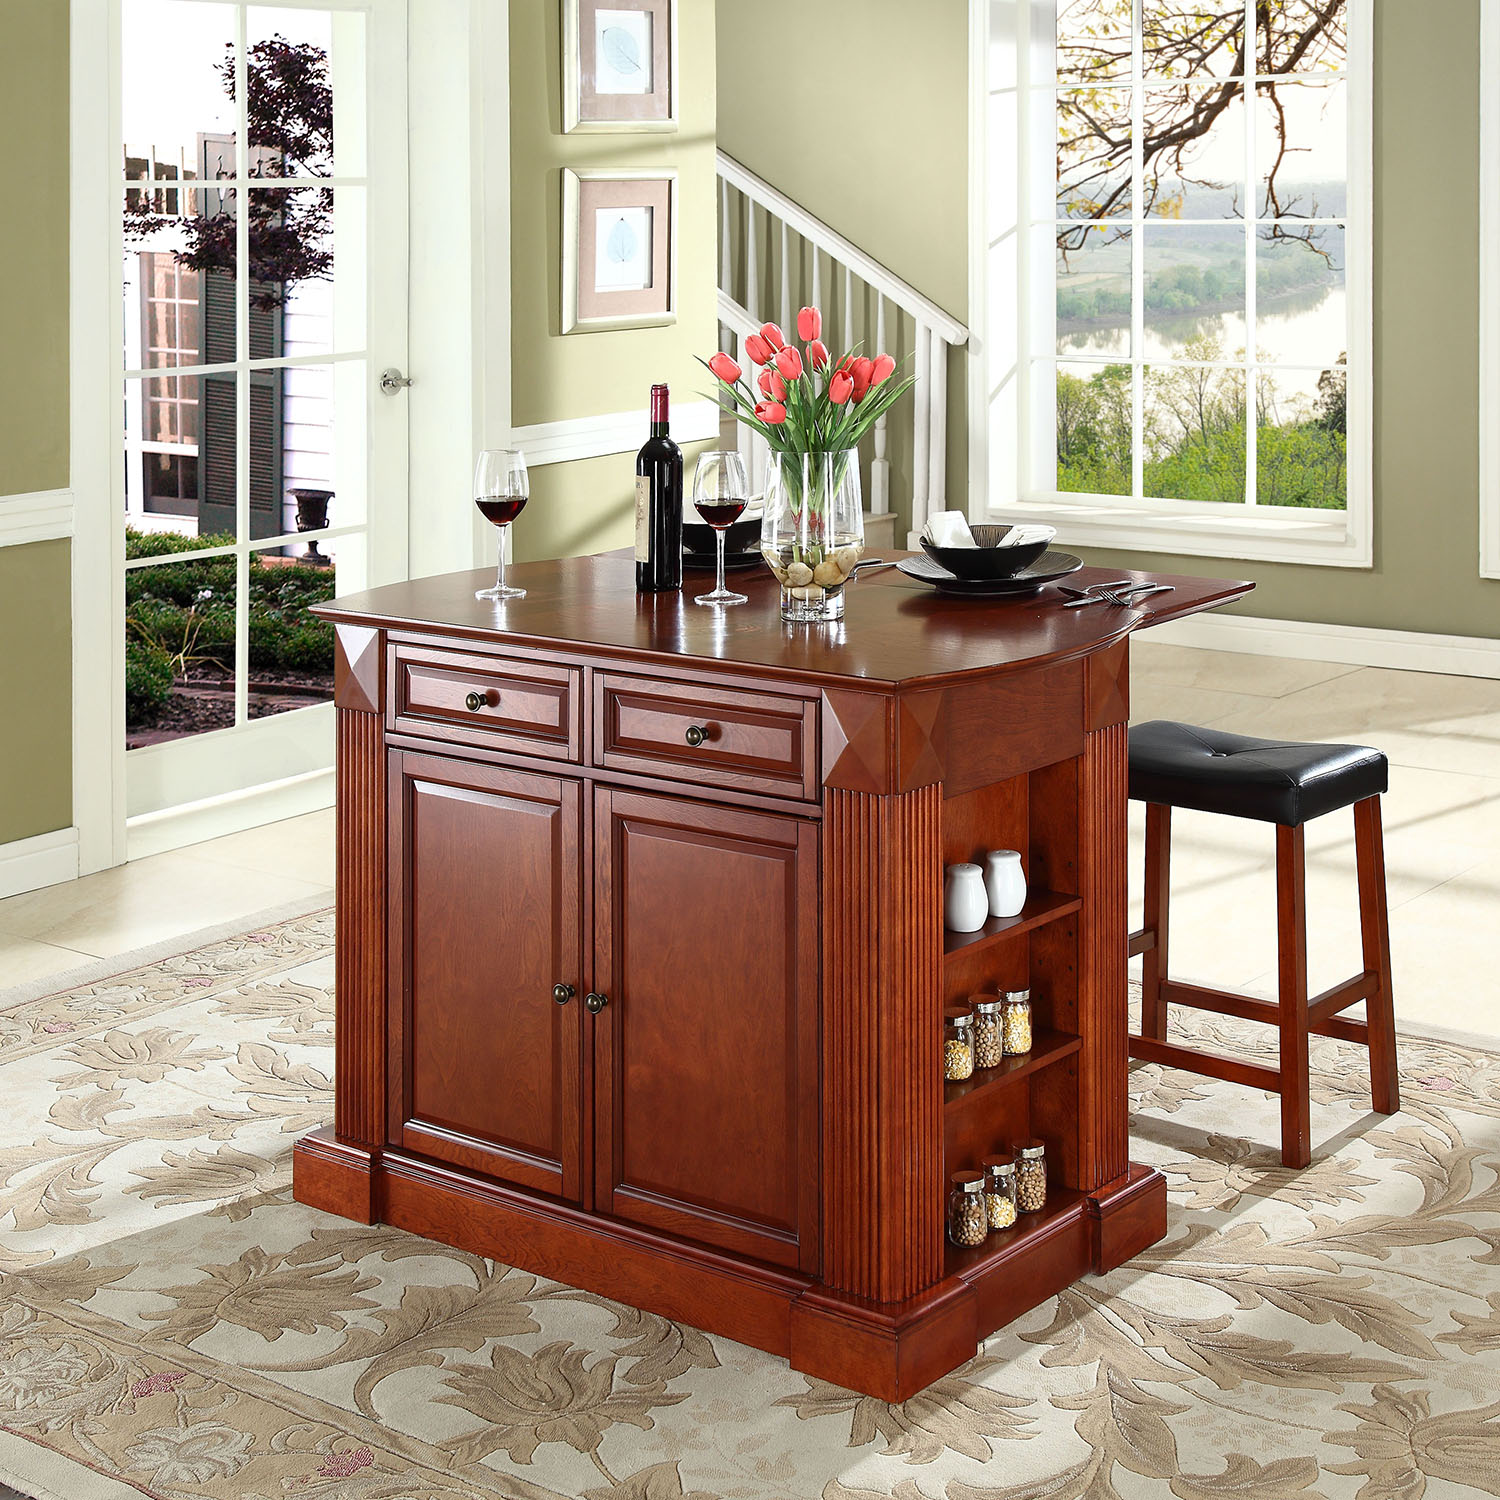 Drop Leaf Breakfast Bar Top Kitchen Island In Cherry With